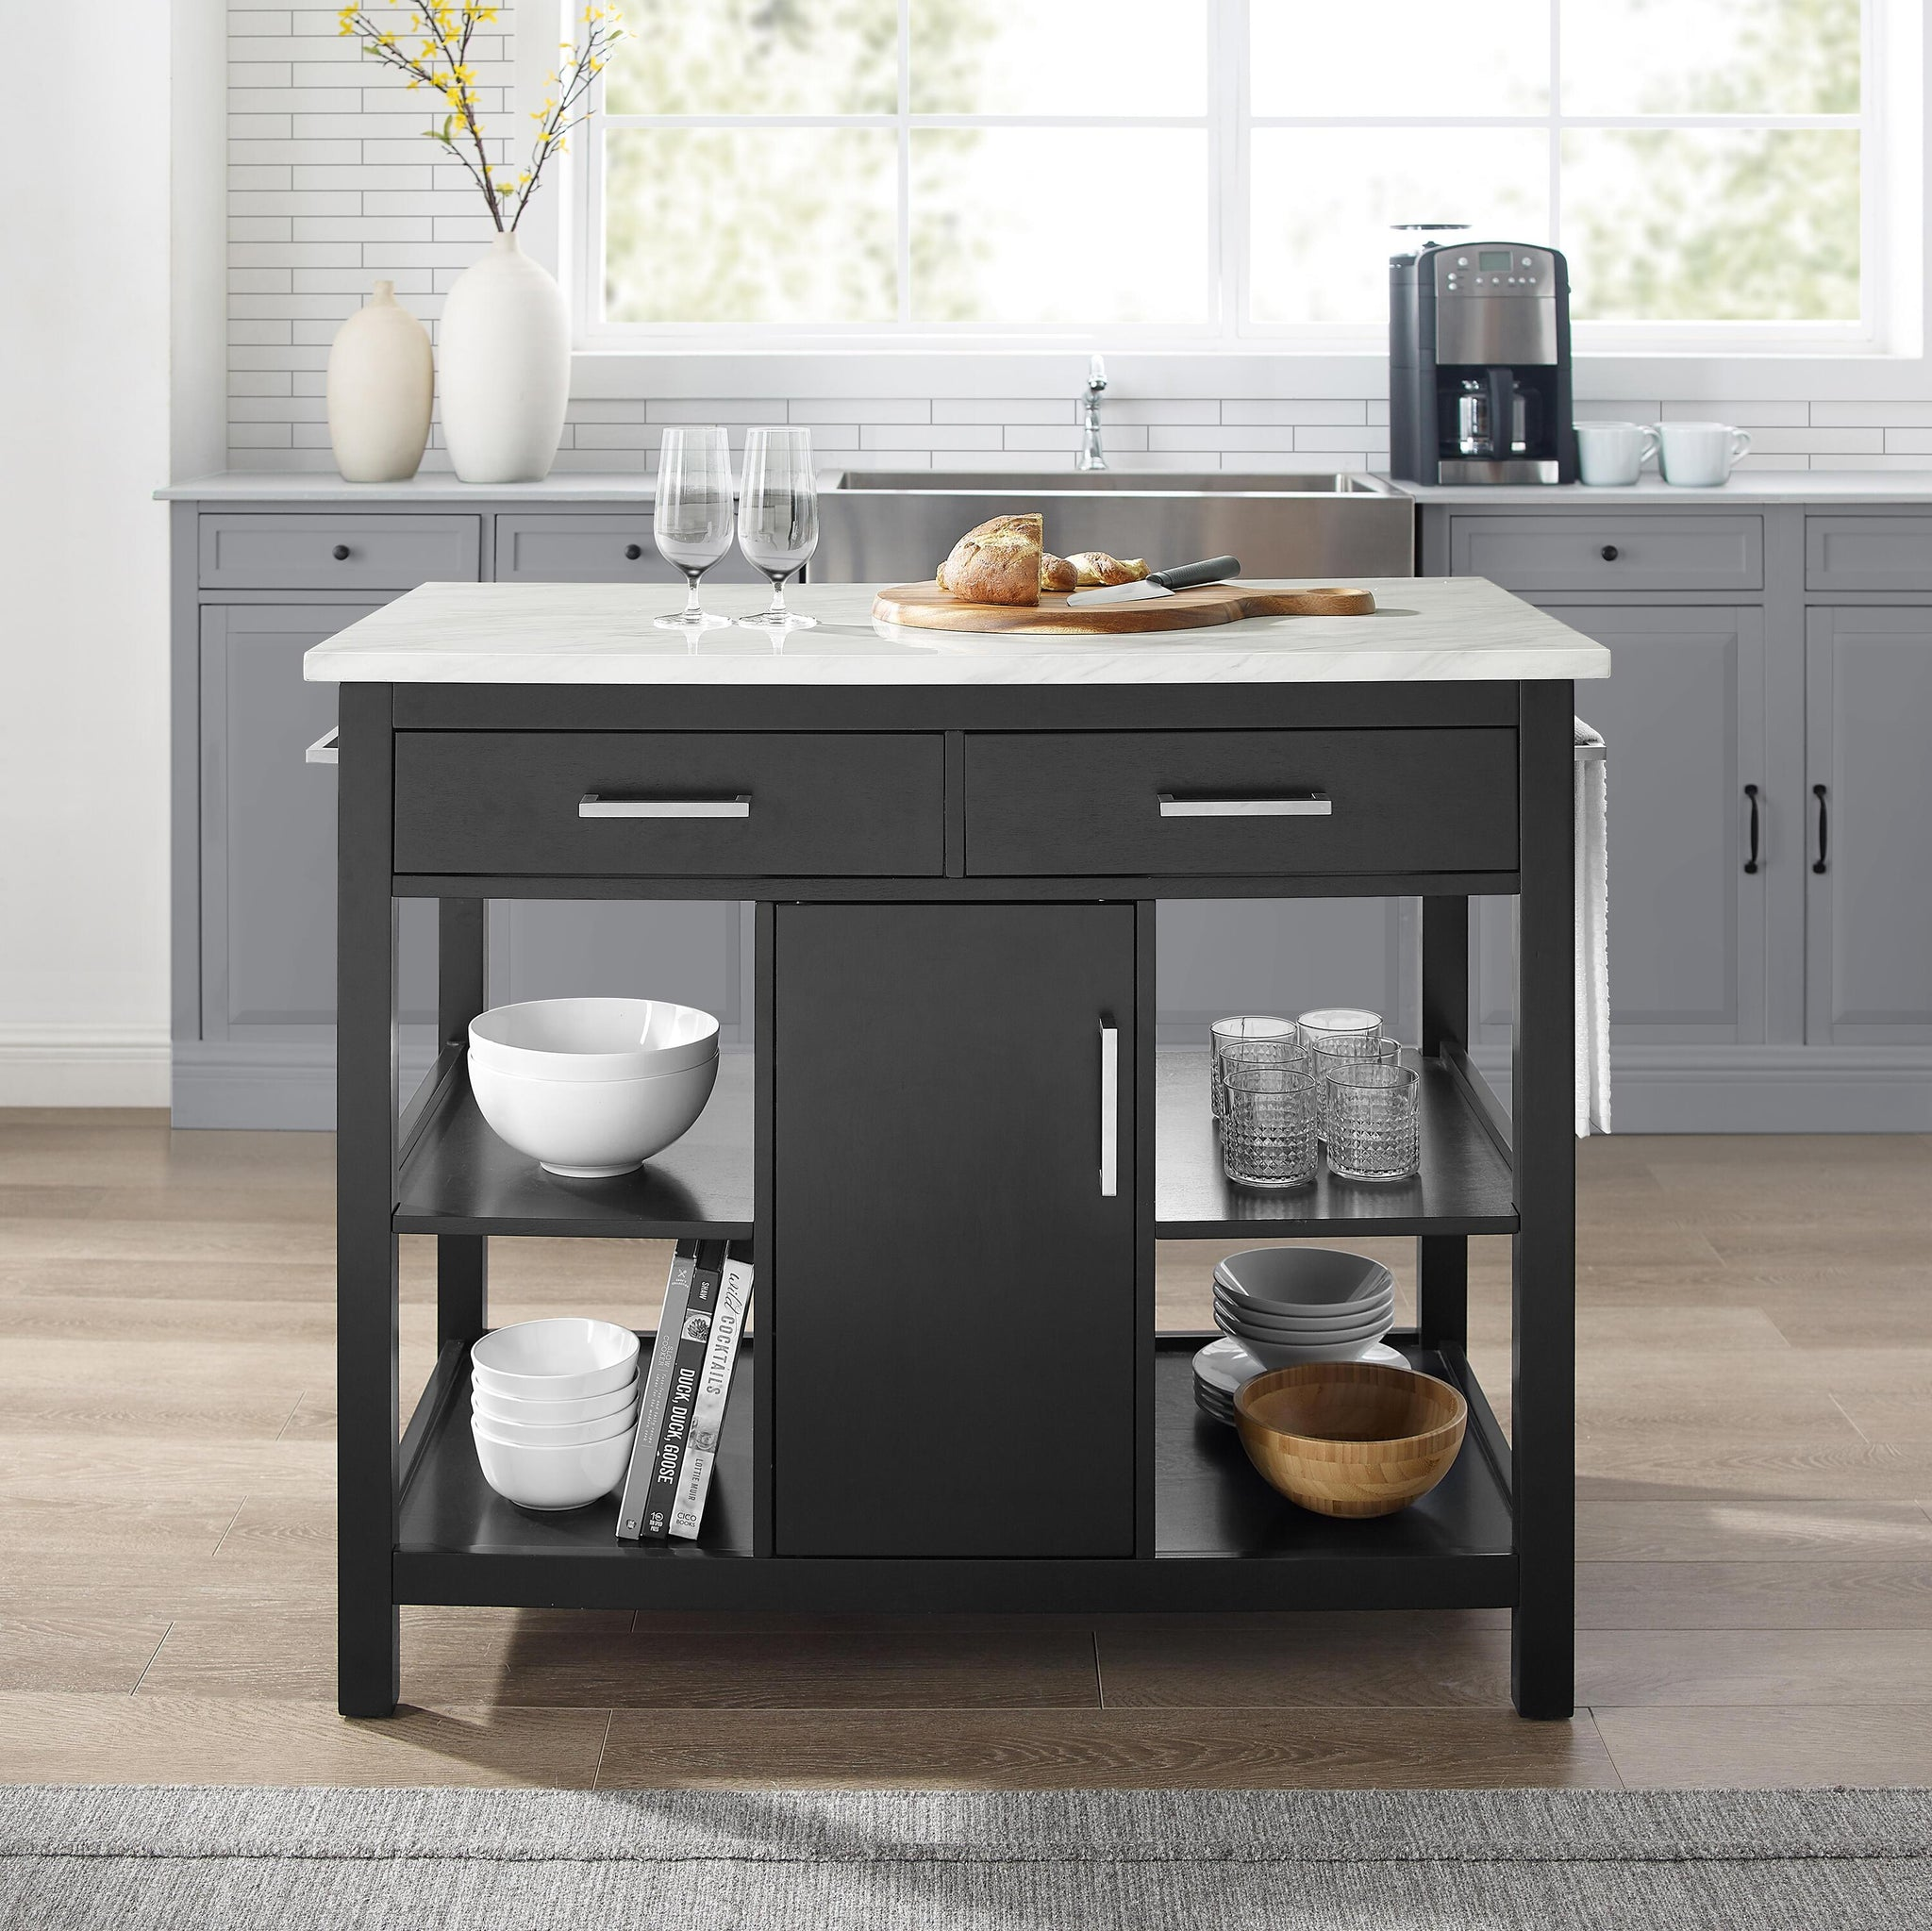 Audrey Black Kitchen Island With Faux Marble Top Kitchen Furniture Company